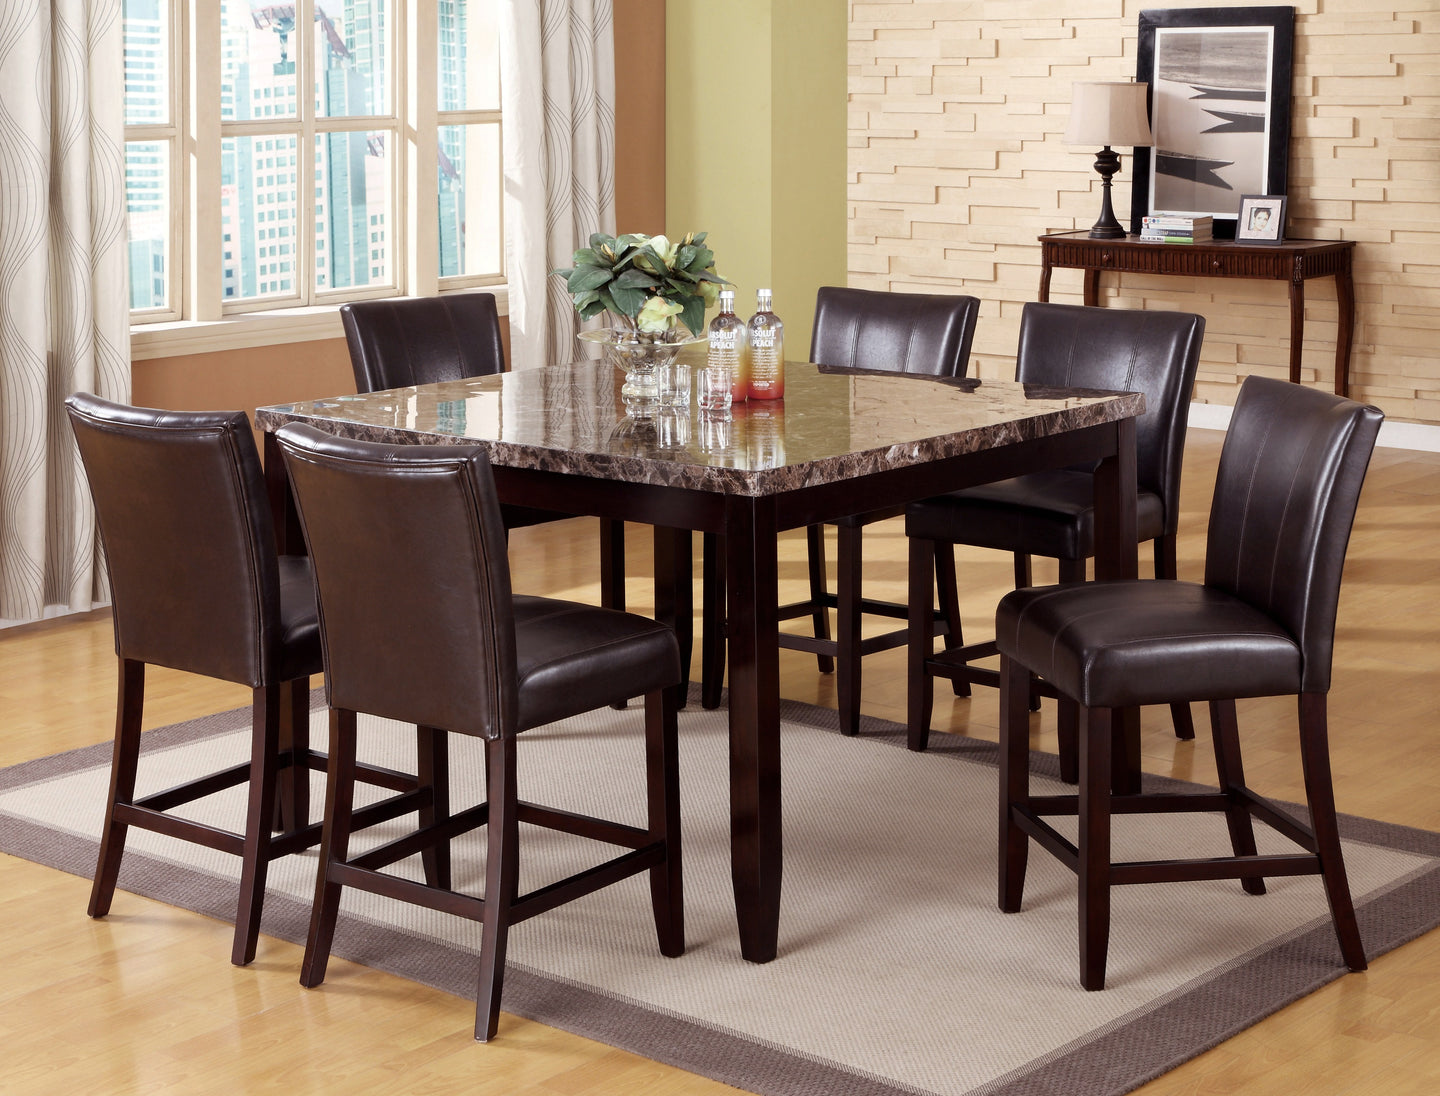 Ferrara Faux Marble-Top Counter Height Dining Set | 2721 - Bellaria Furniture HomeStore